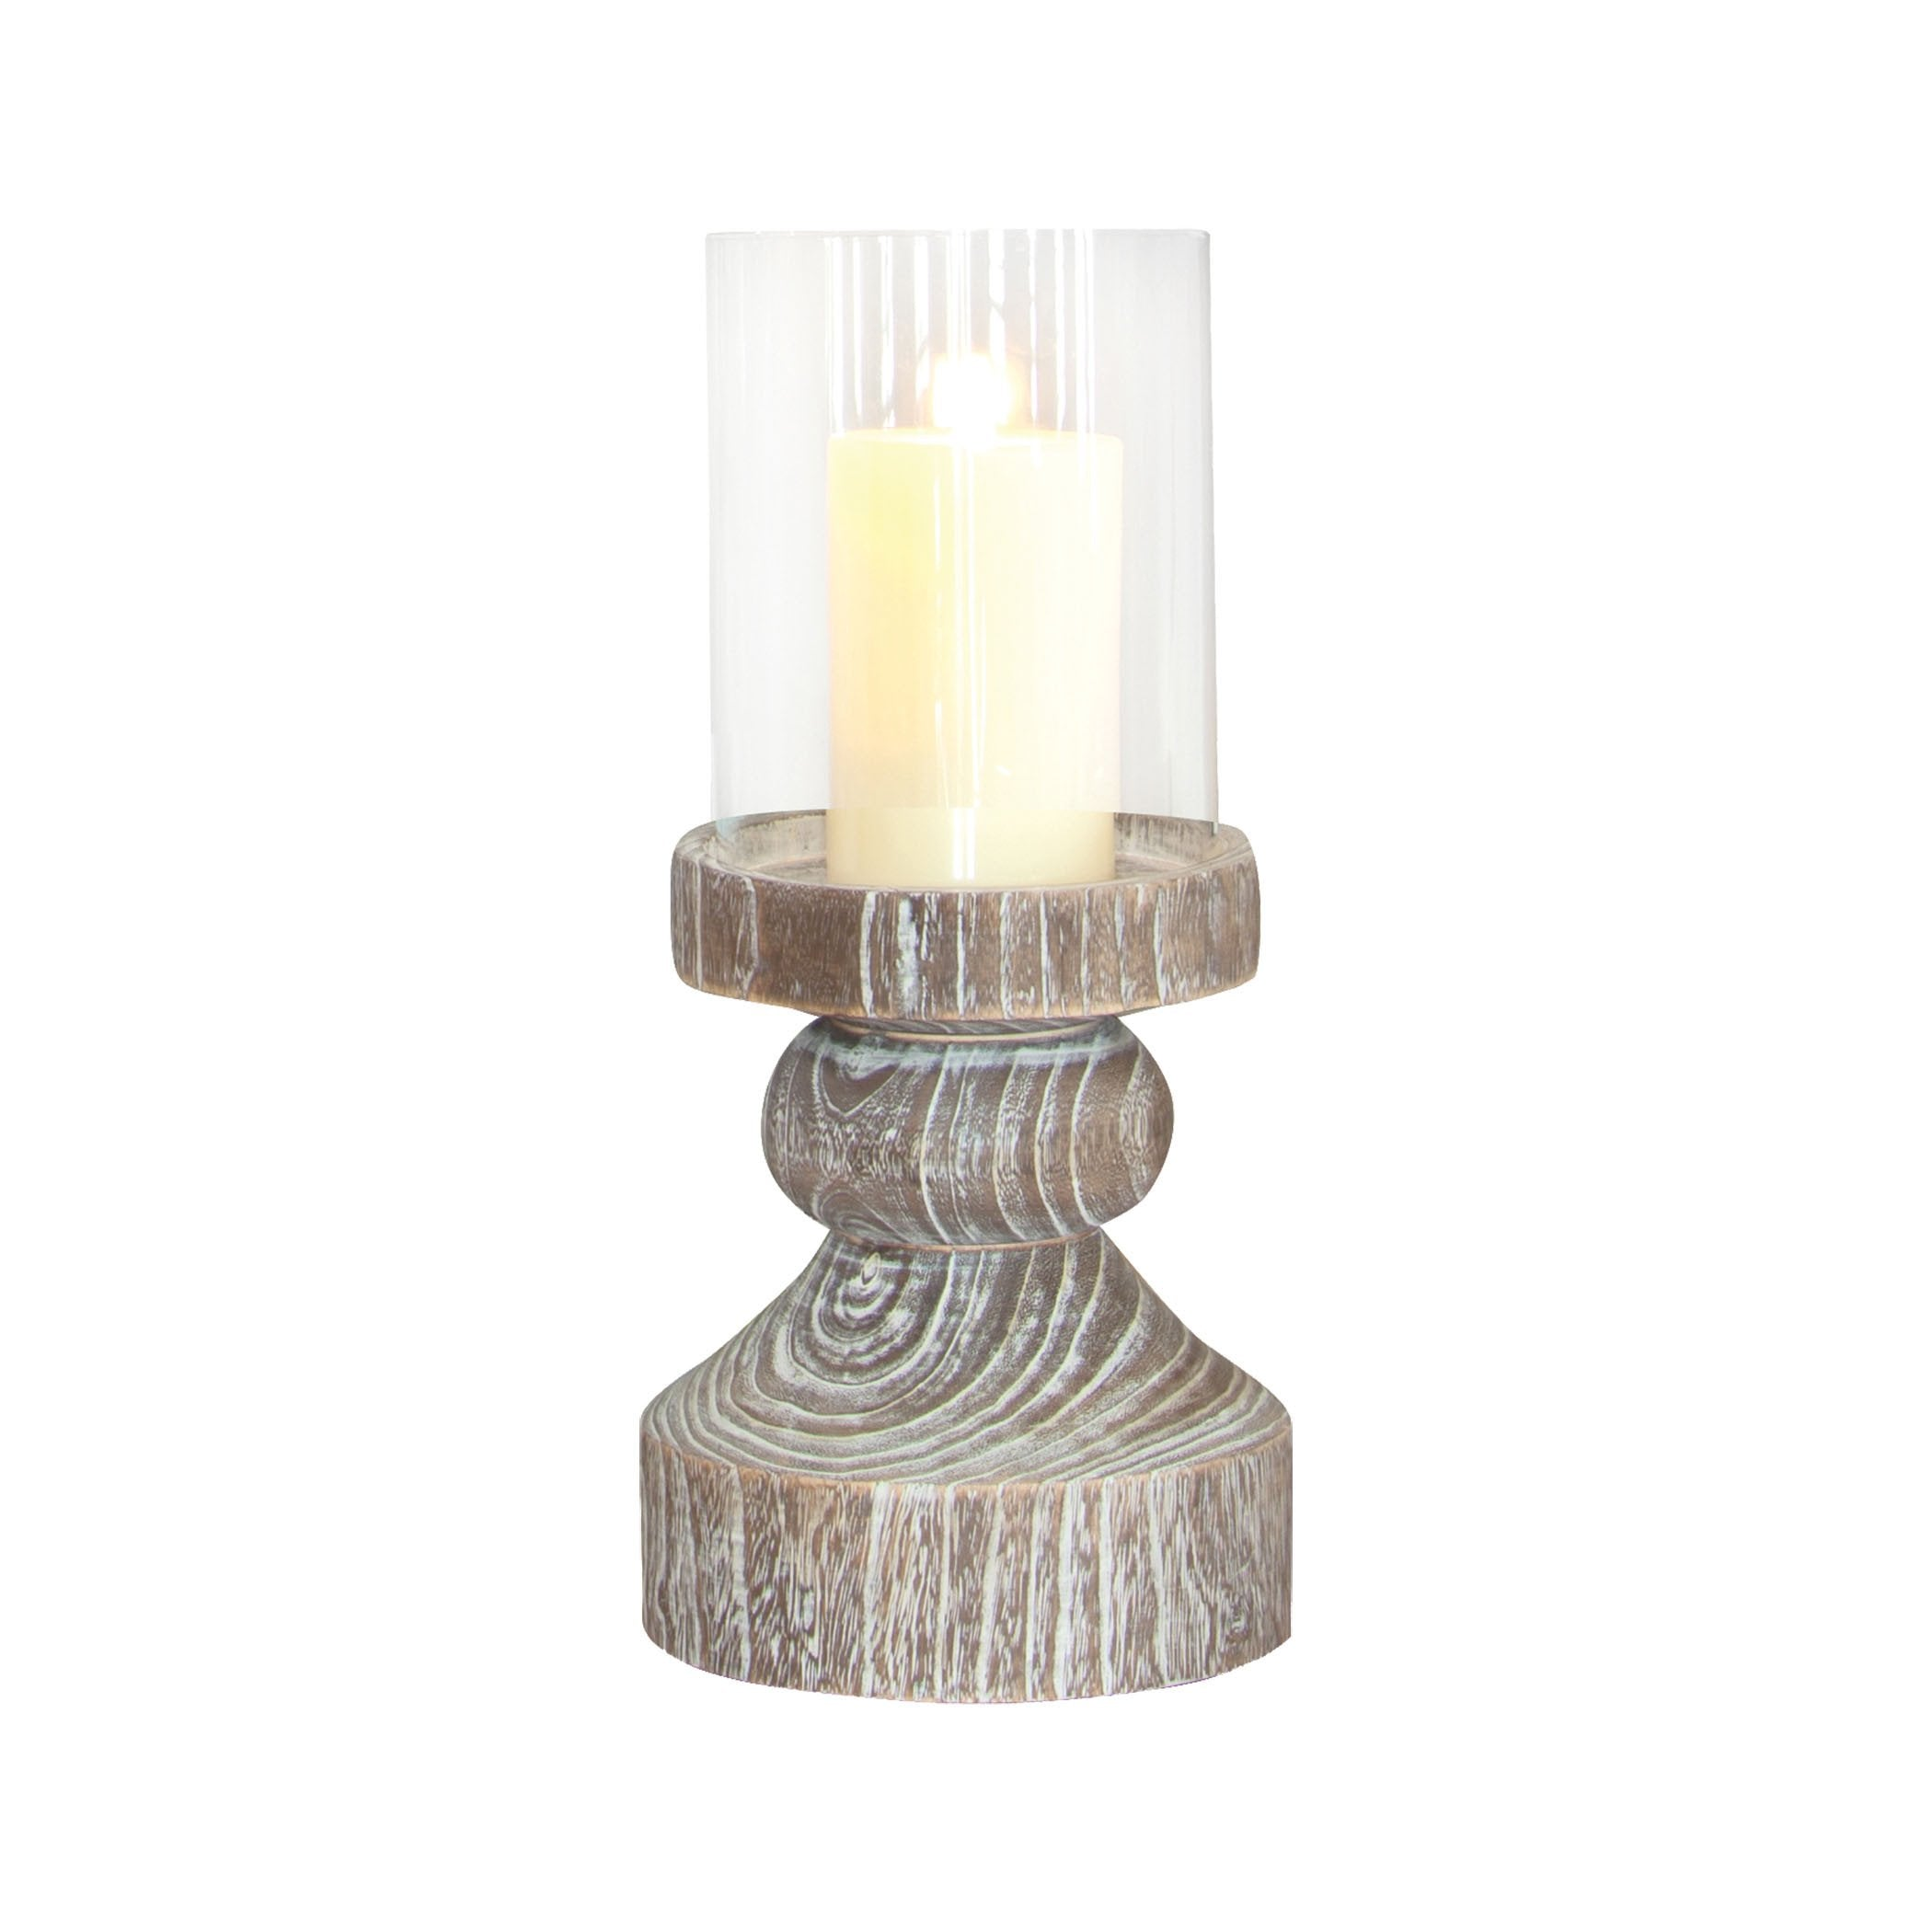 Pomeroy POM-525575 Monticello Collection Ashwood,Clear Finish Candle/Candle Holder